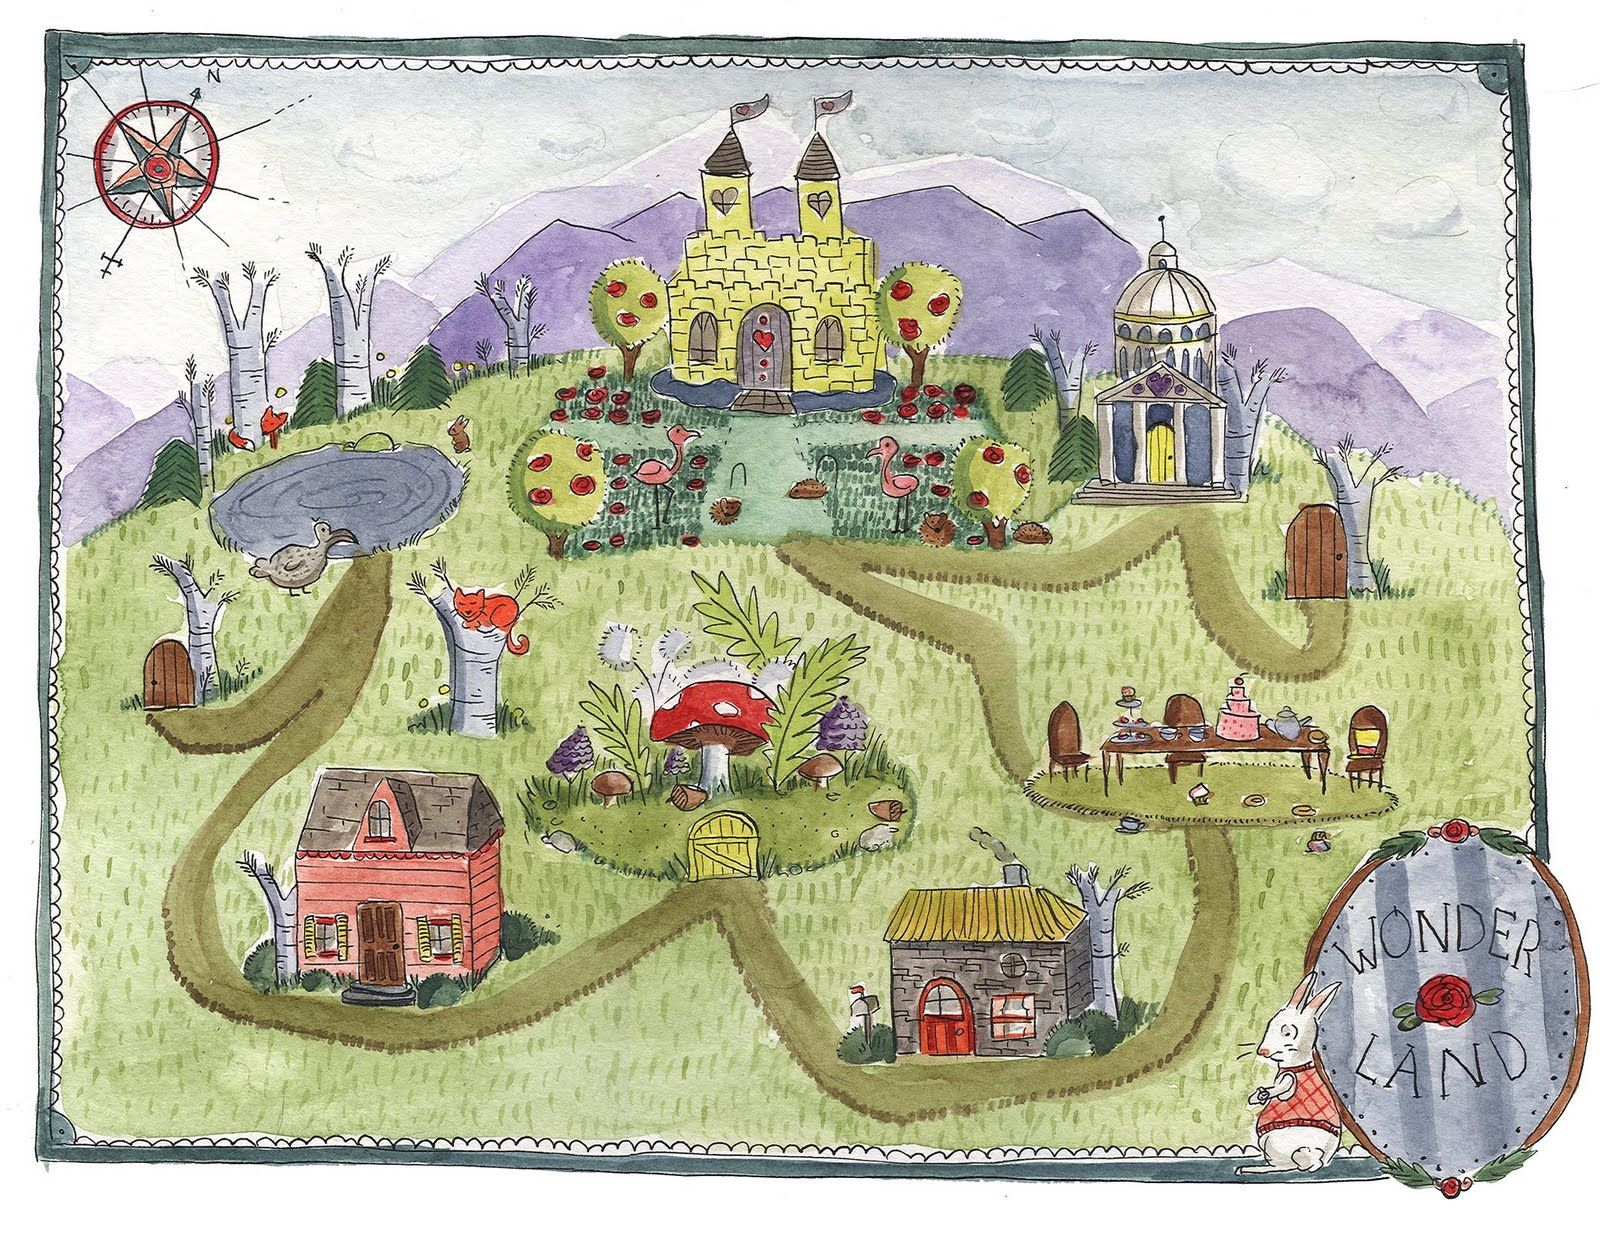 Alice In Wonderland Map Alice in Wonderland map | Fictional Maps | Pinterest | Wonderland  Alice In Wonderland Map